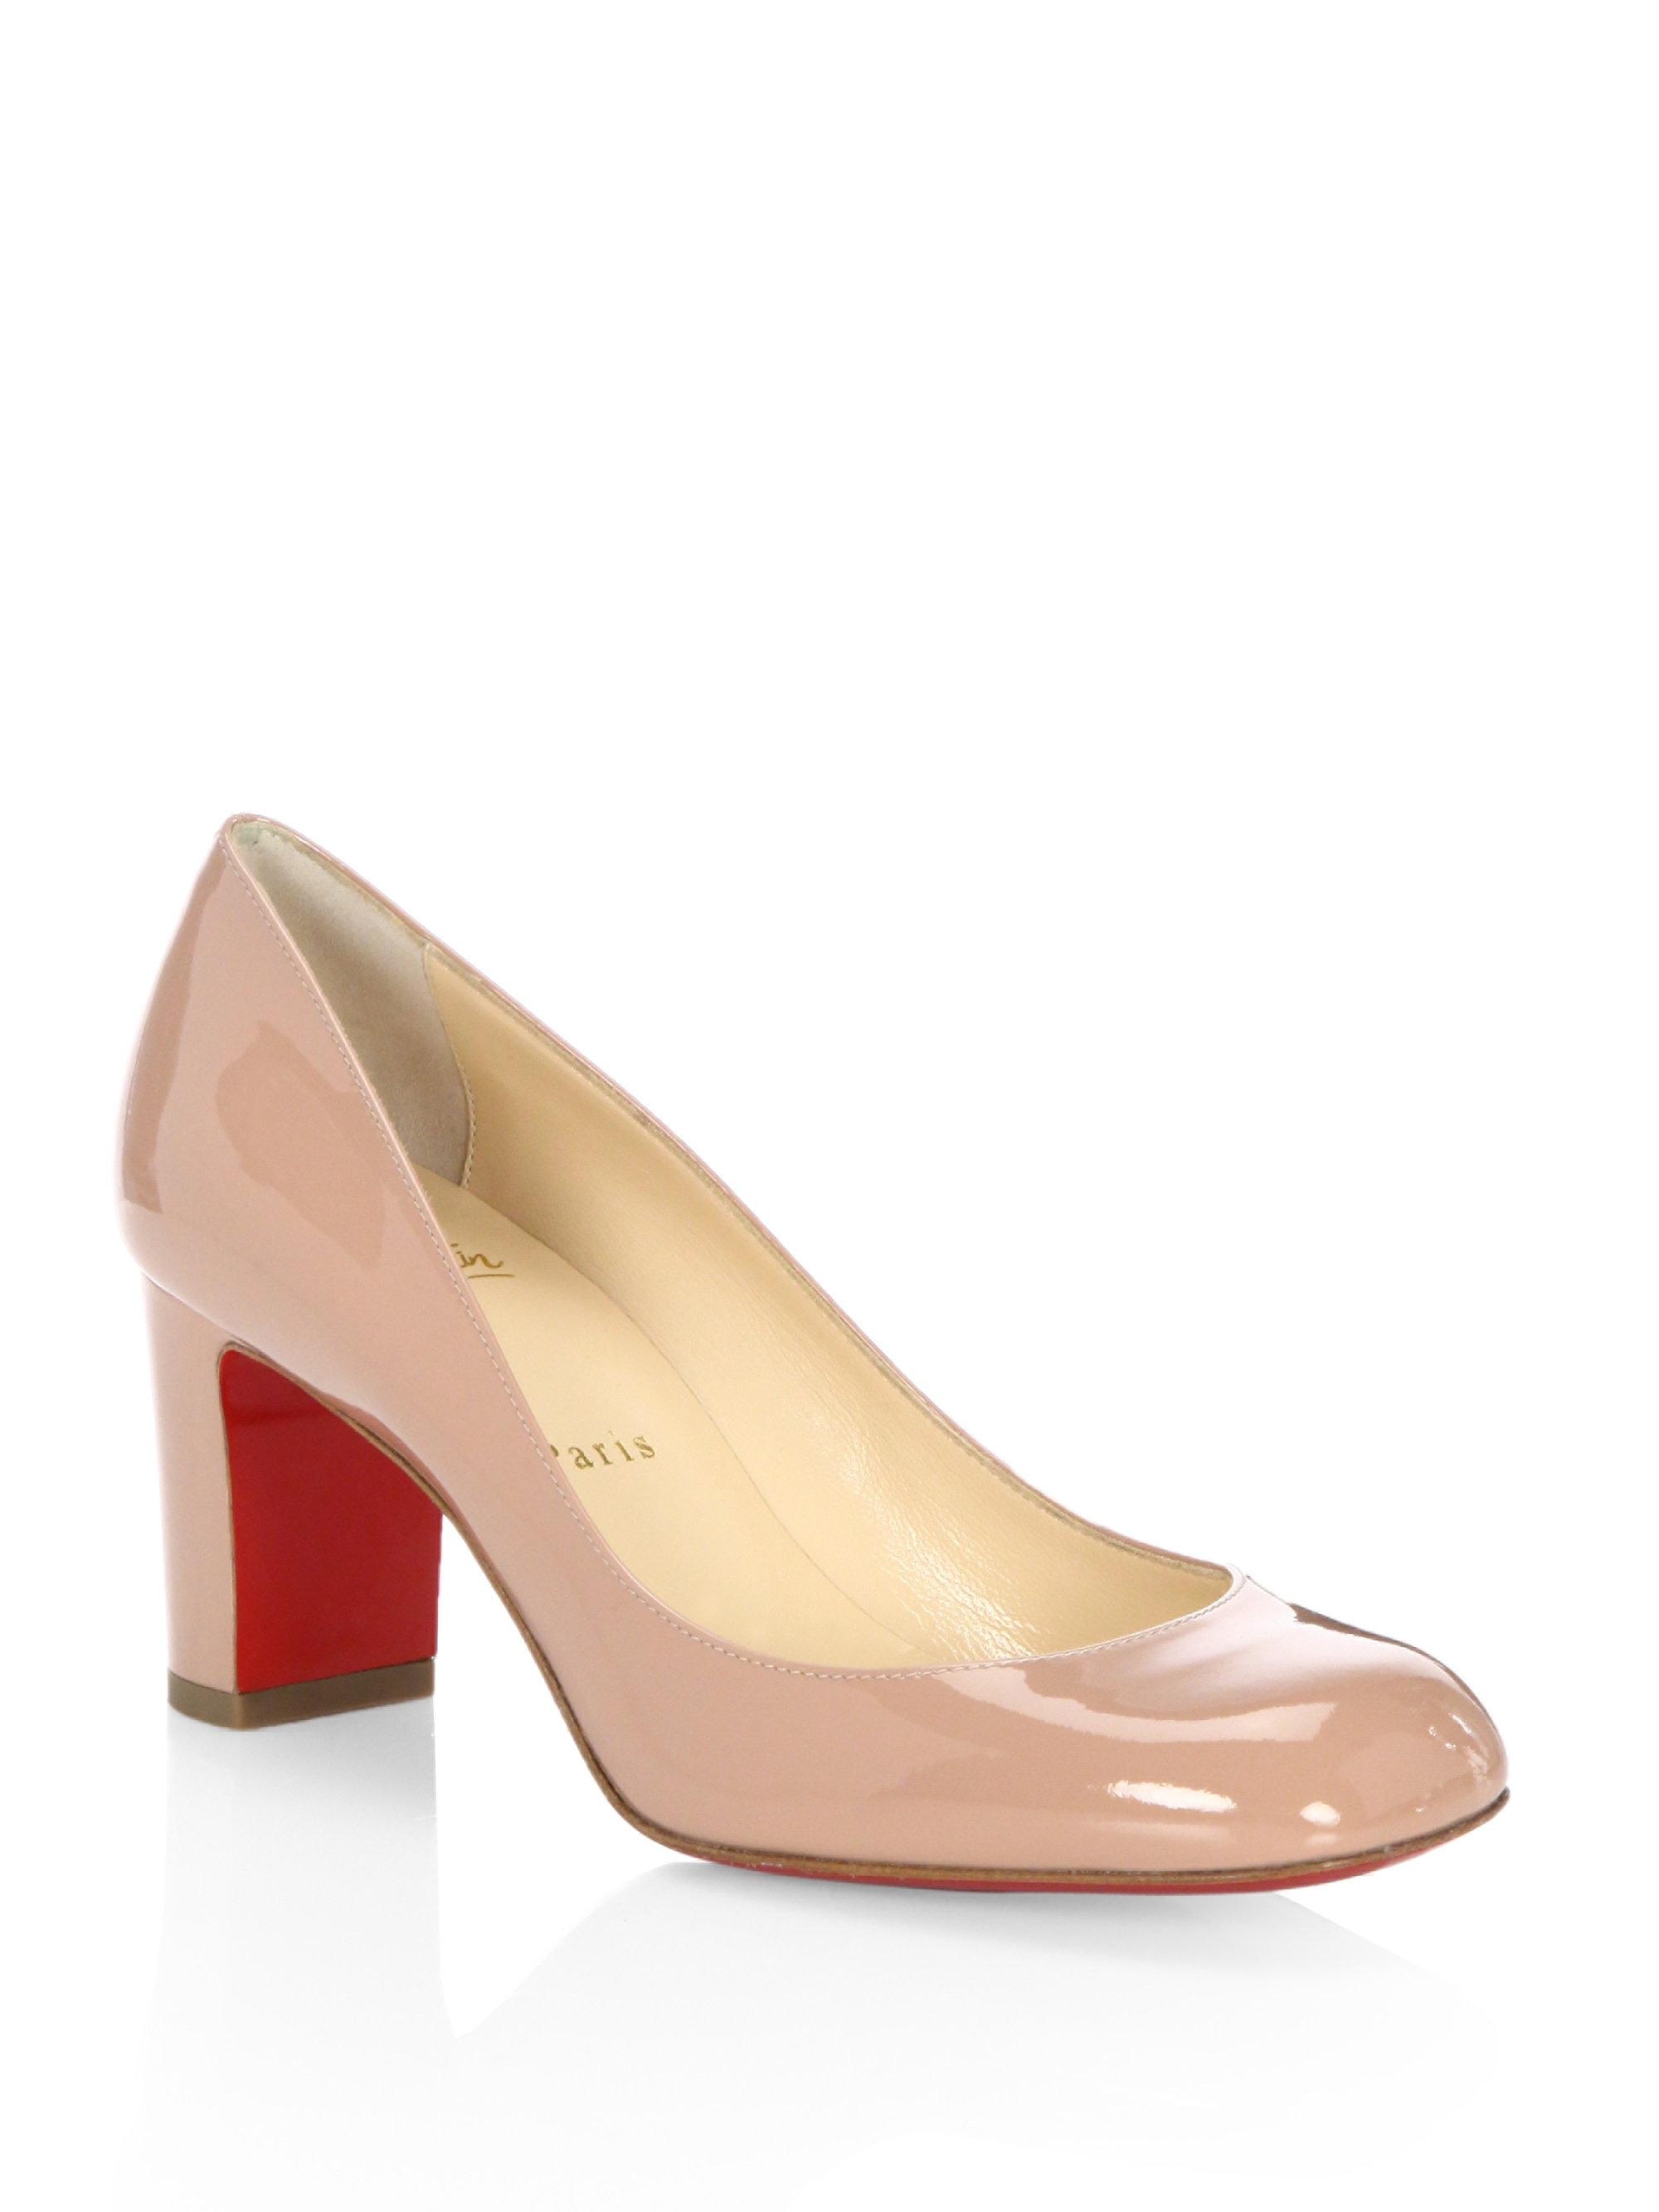 new product cee3b 20ae2 Christian Louboutin Natural Cadrilla 70 Patent Leather Block Heel Pumps